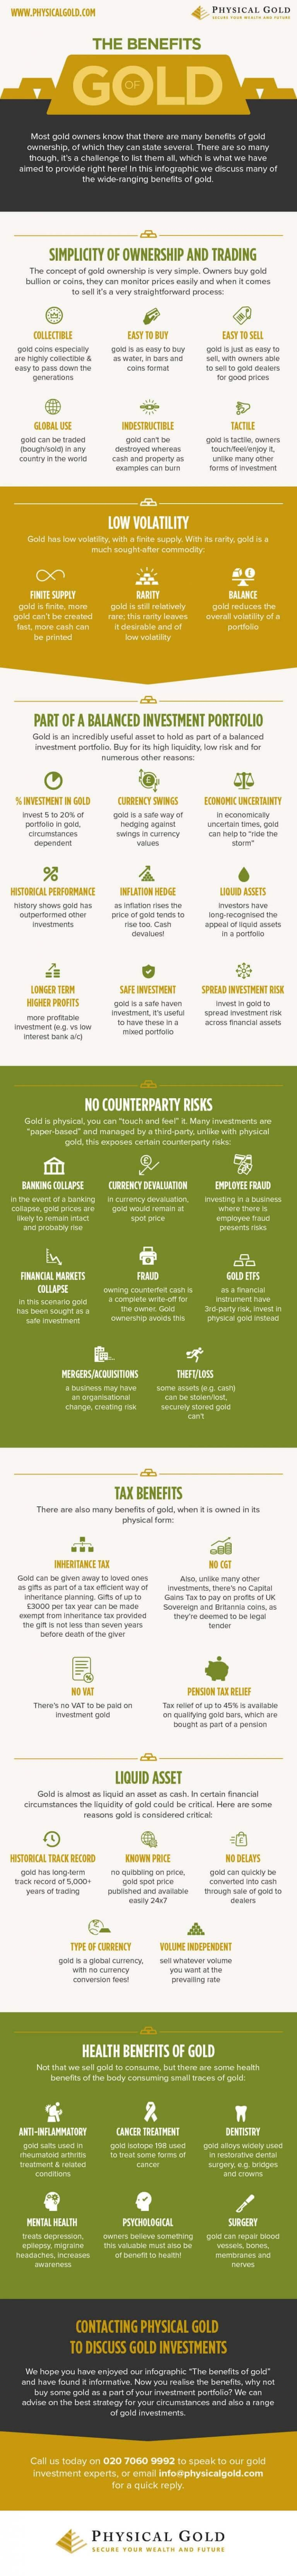 benefits-of-gold-investment-infographic